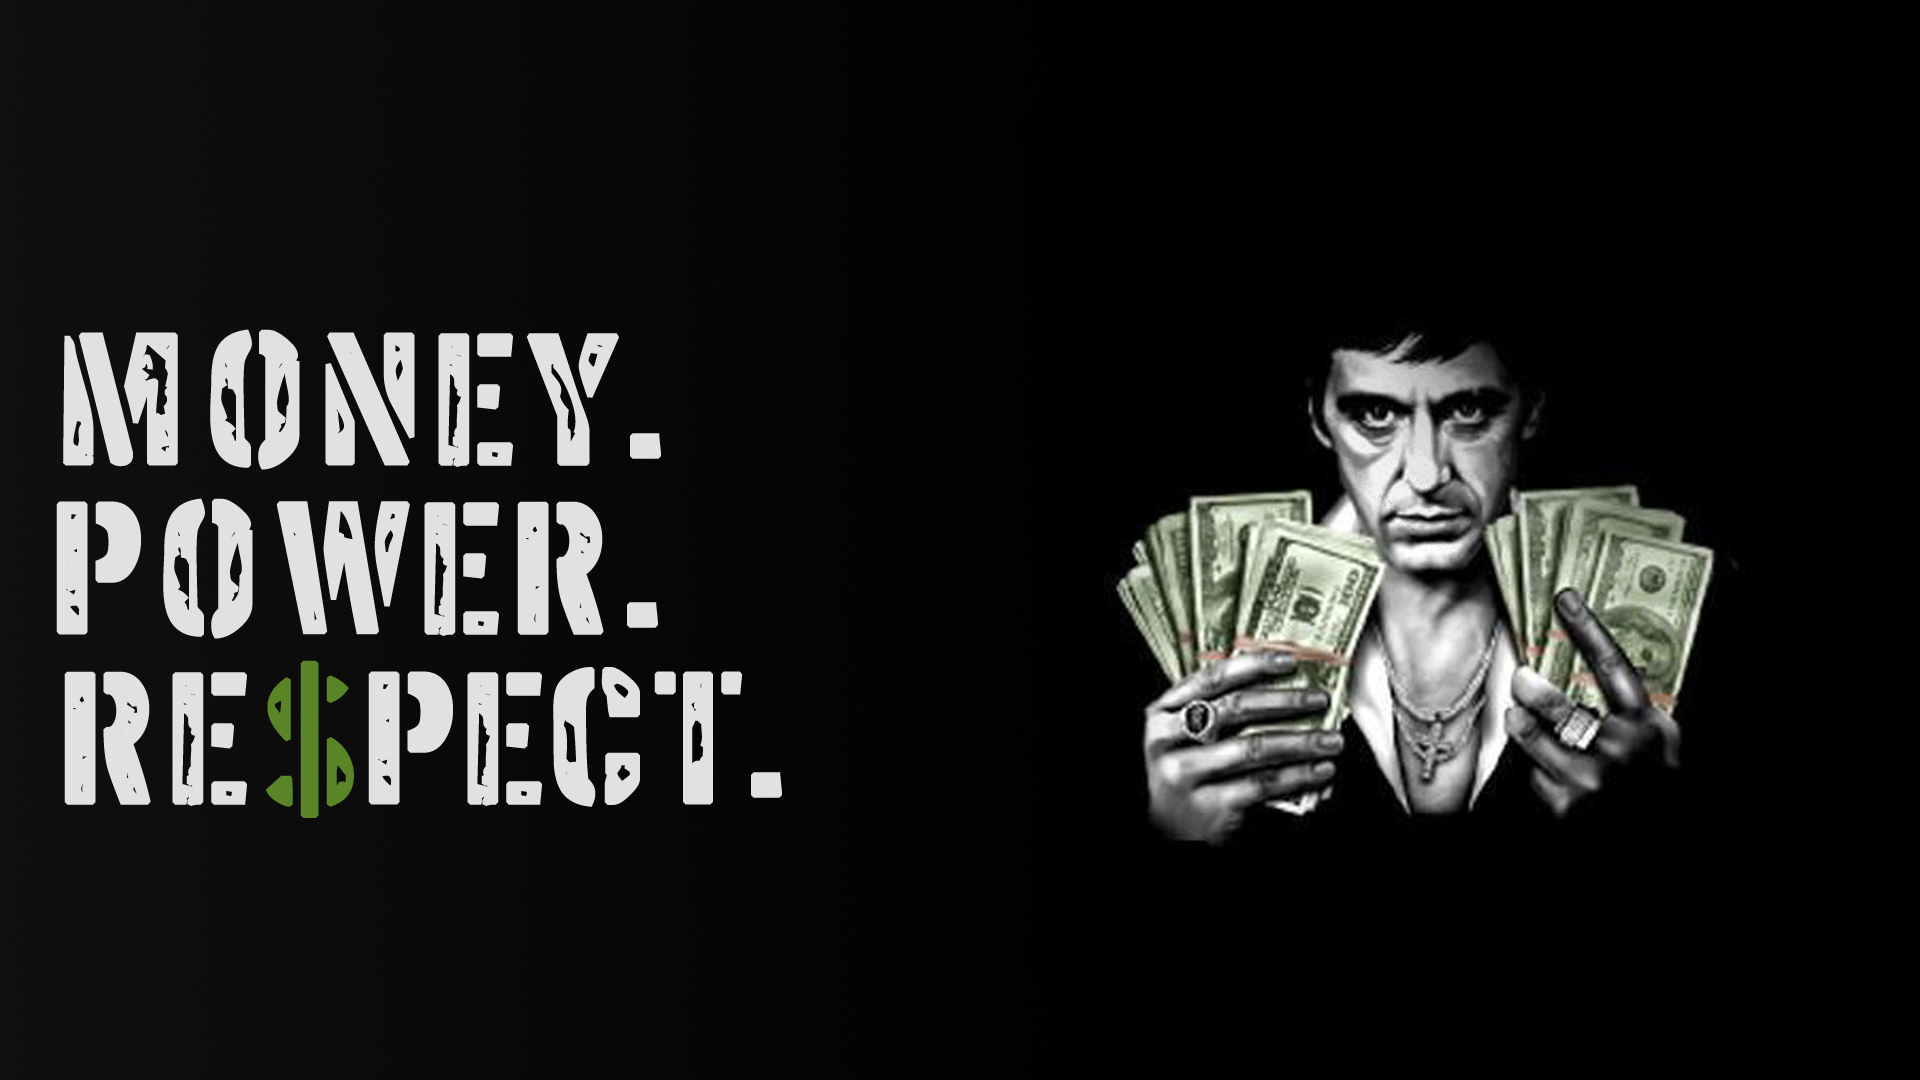 Scarface quotes wallpaper by veeradesigns 1920x1080